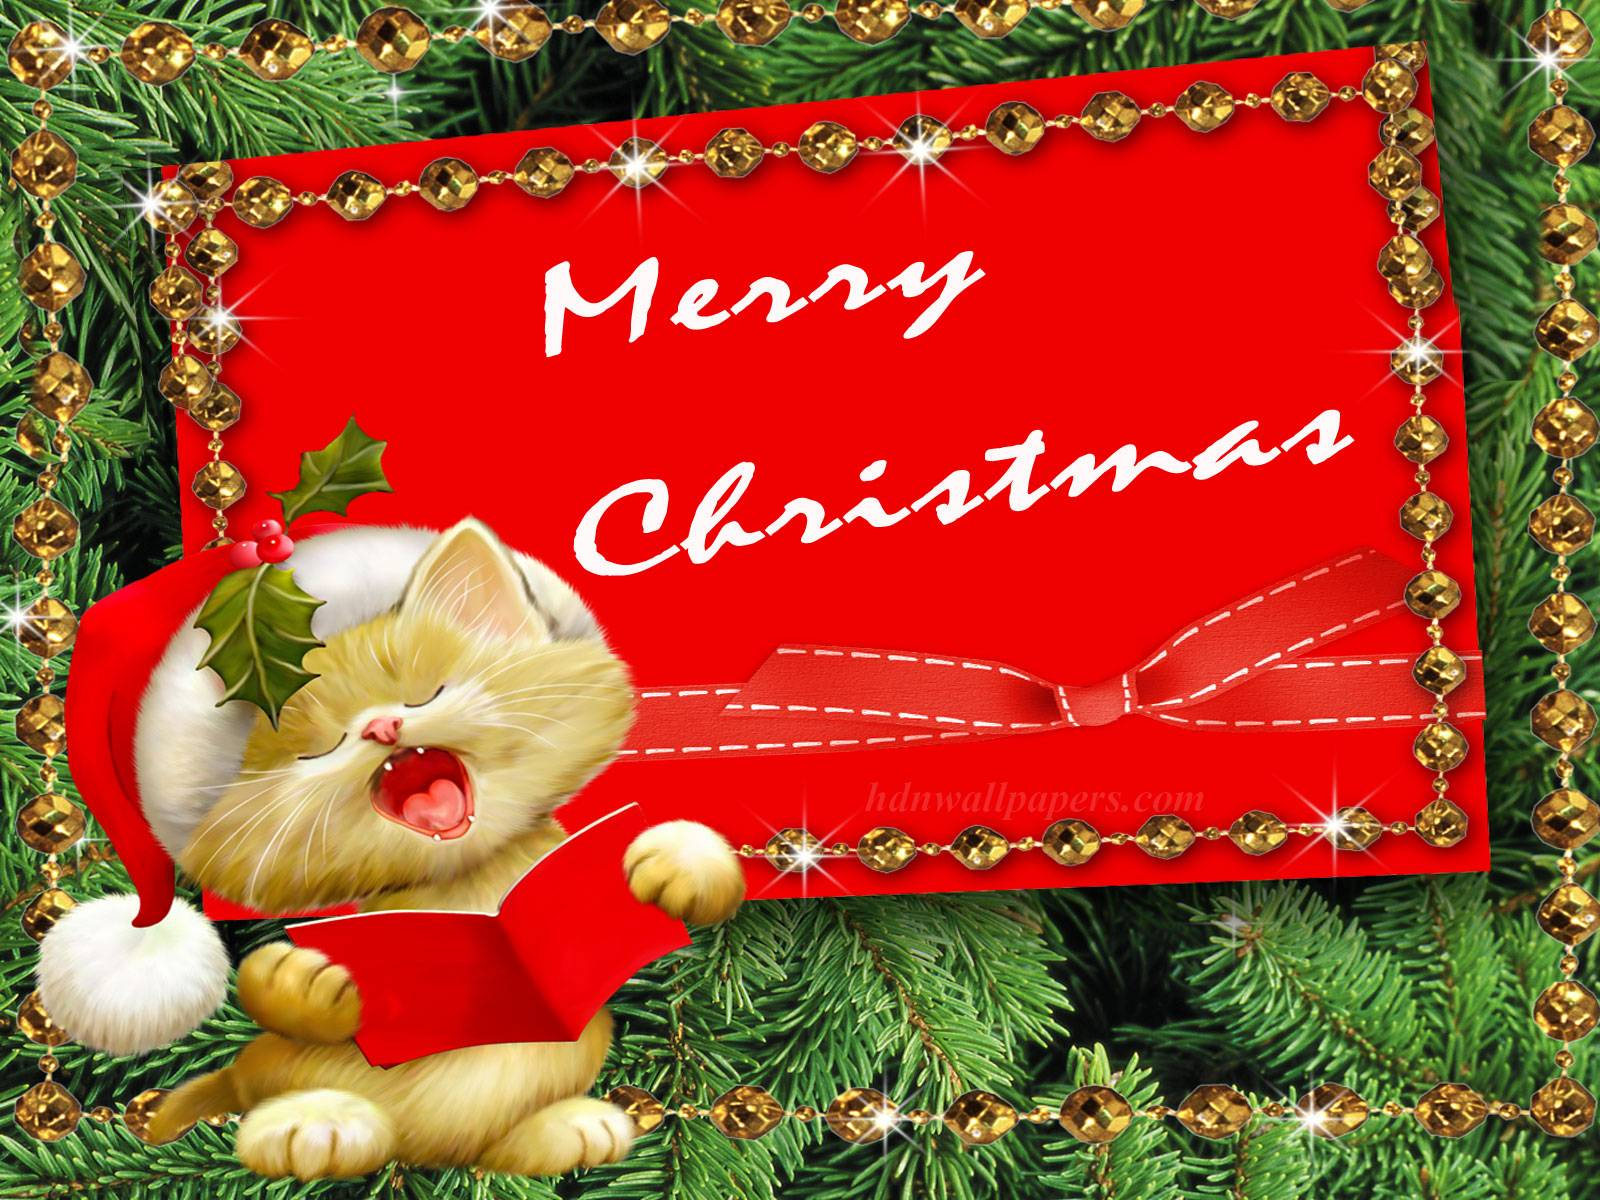 merry christmas live hd wallpapers free download